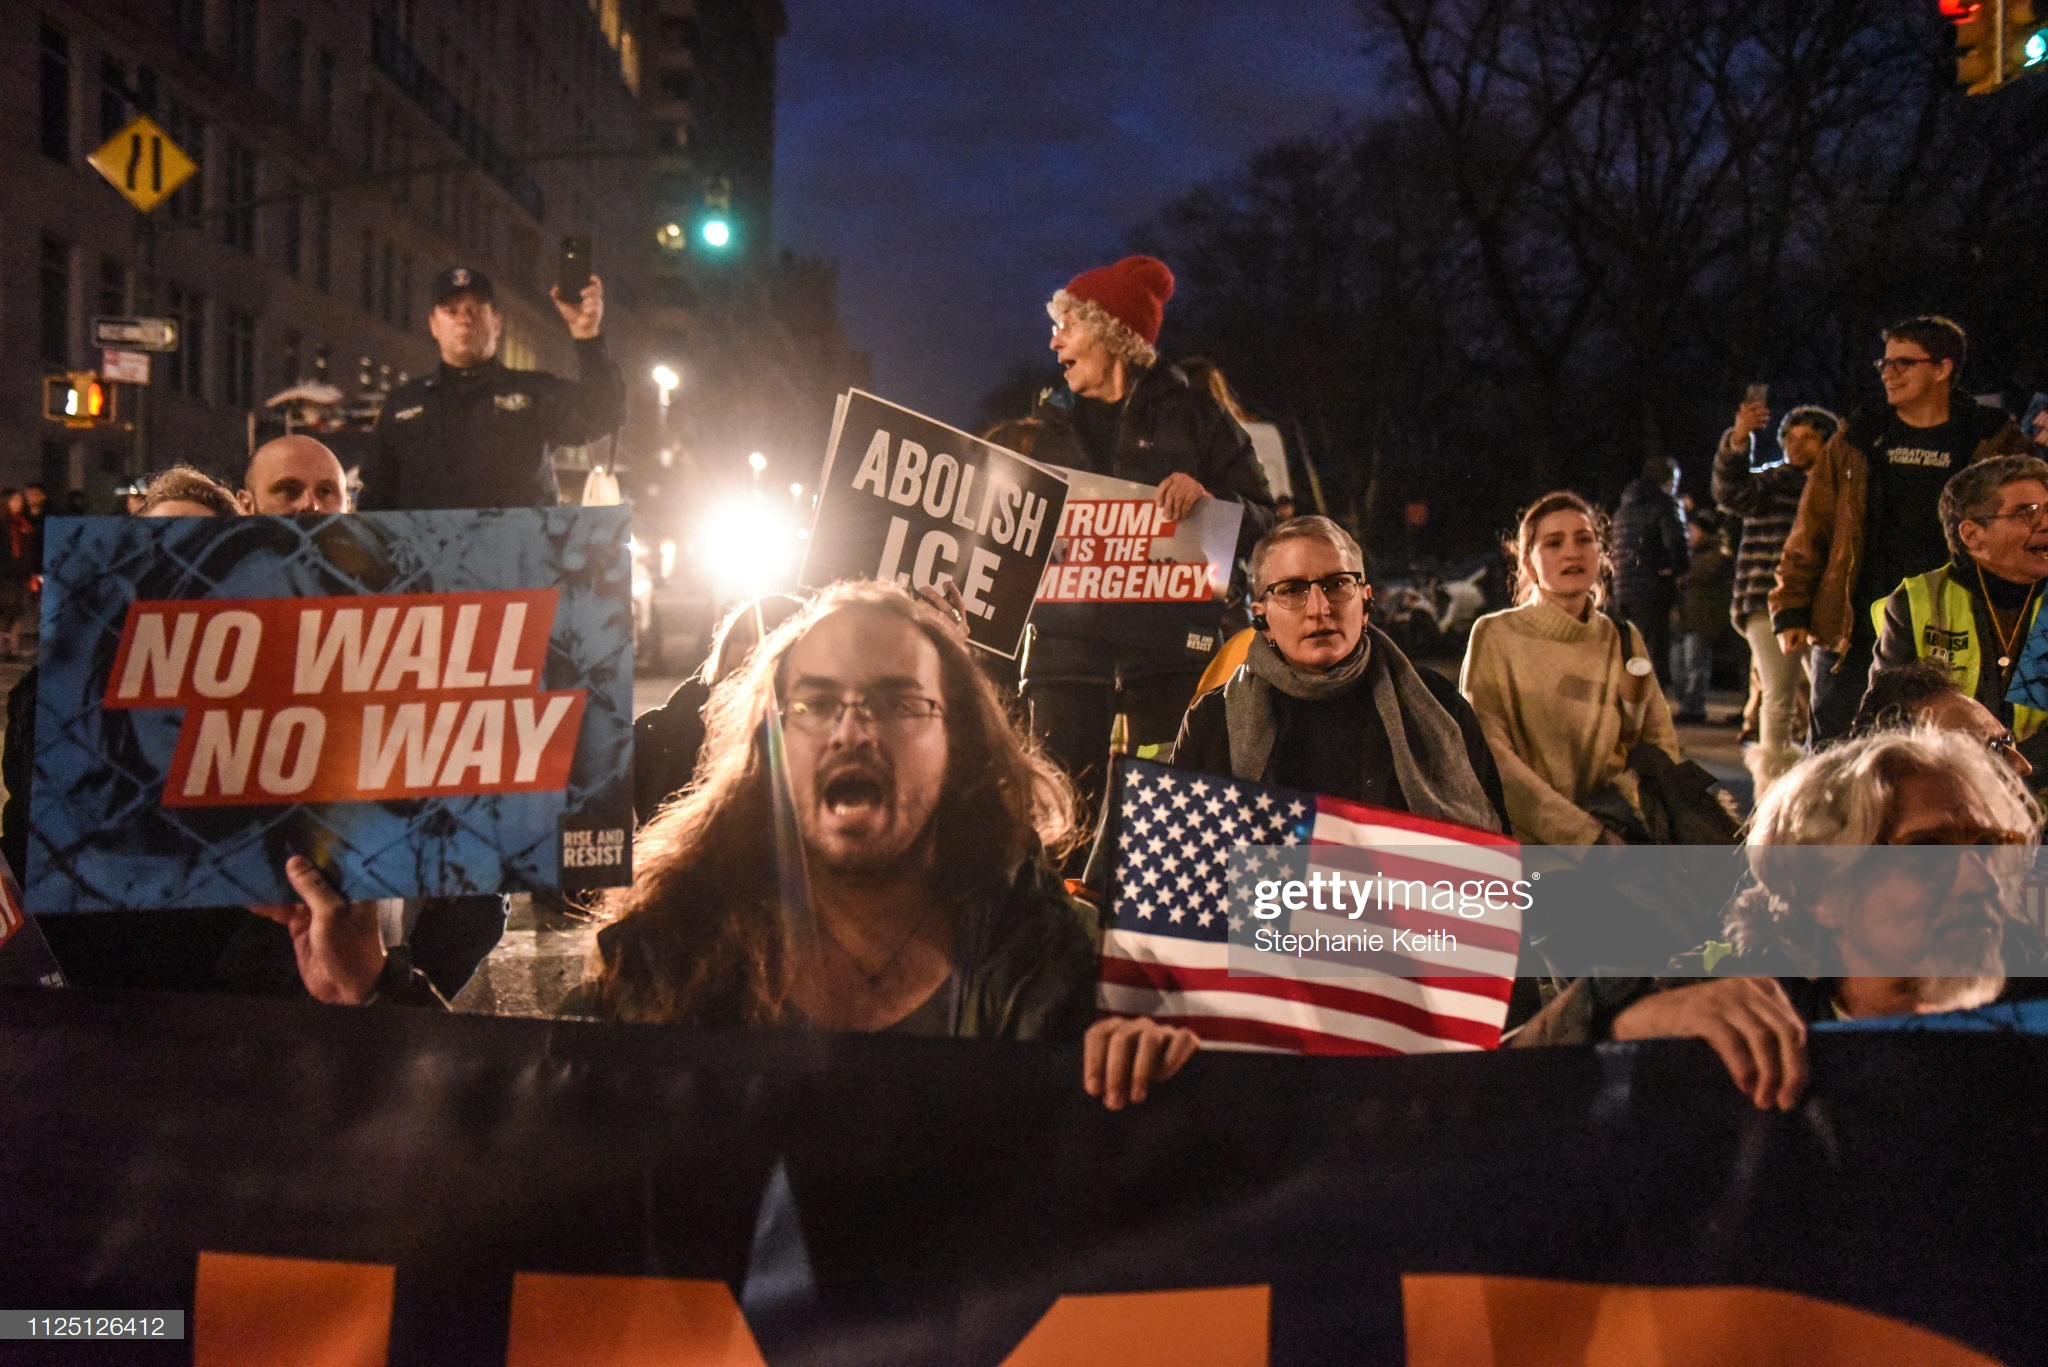 NEW YORK, NY - FEBRUARY 15: People affiliated with the protest group, Rise and Resist, block the street in front of Trump International Hotel on February 15, 2019 in New York City. The group is protesting U.S. President Donald Trump's declaration of a National Emergency in order to build his proposed border wall. (Photo by Stephanie Keith/Getty Images)